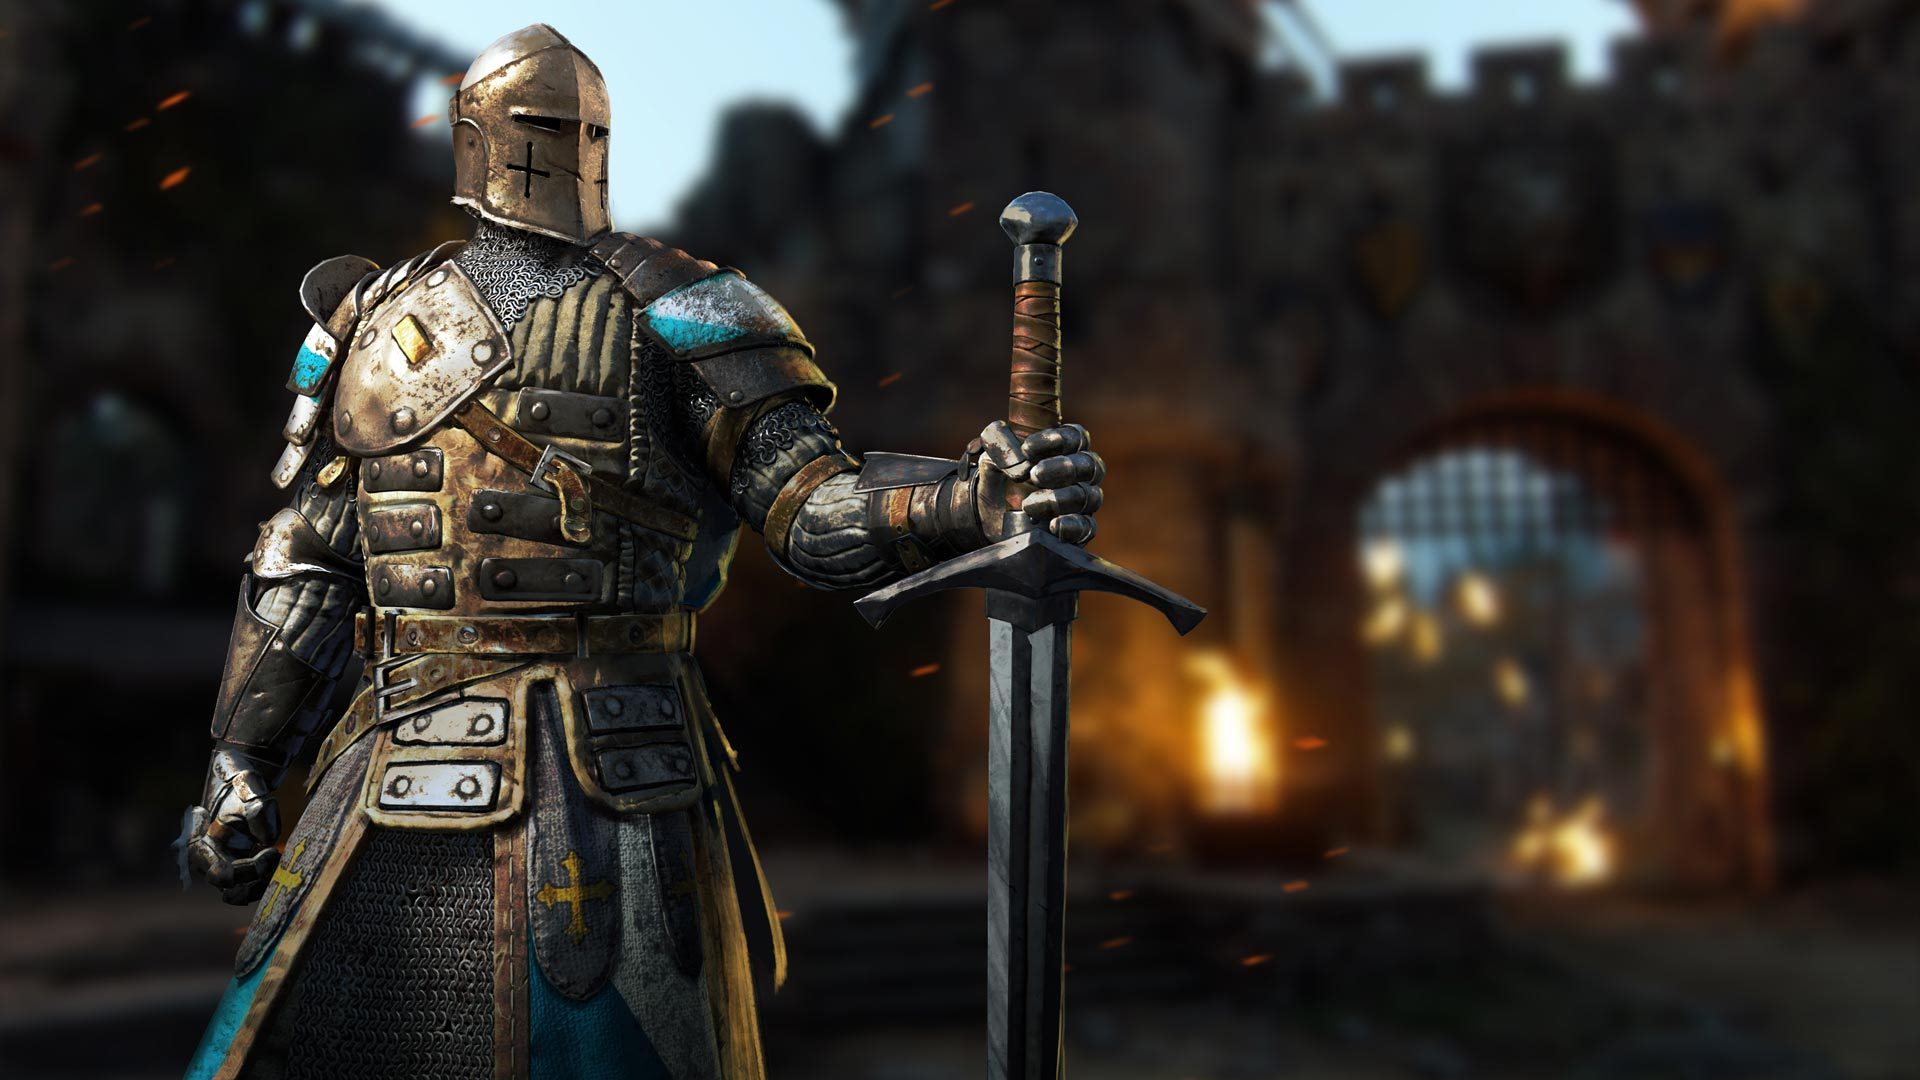 Game For Honor Images - Best 1v1 Games Ps4 , HD Wallpaper & Backgrounds